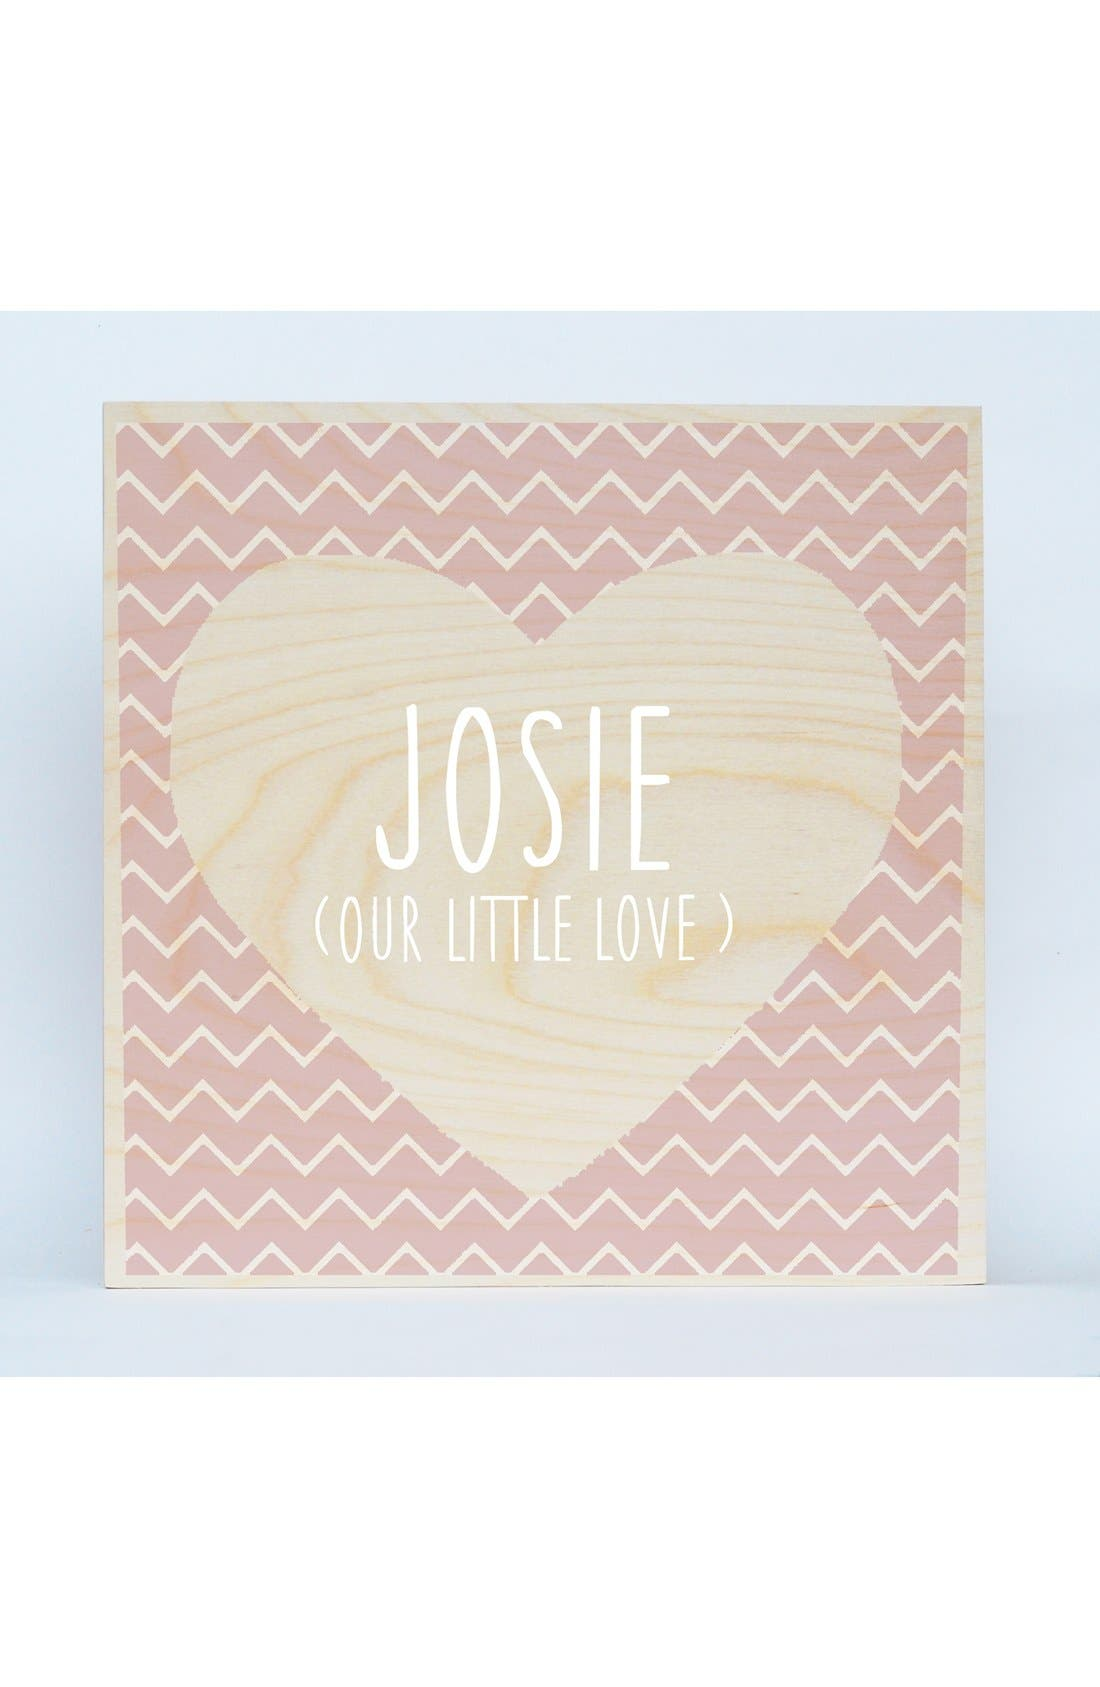 'Chevron Heart' Personalized Birchwood Wall Art,                             Main thumbnail 1, color,                             650